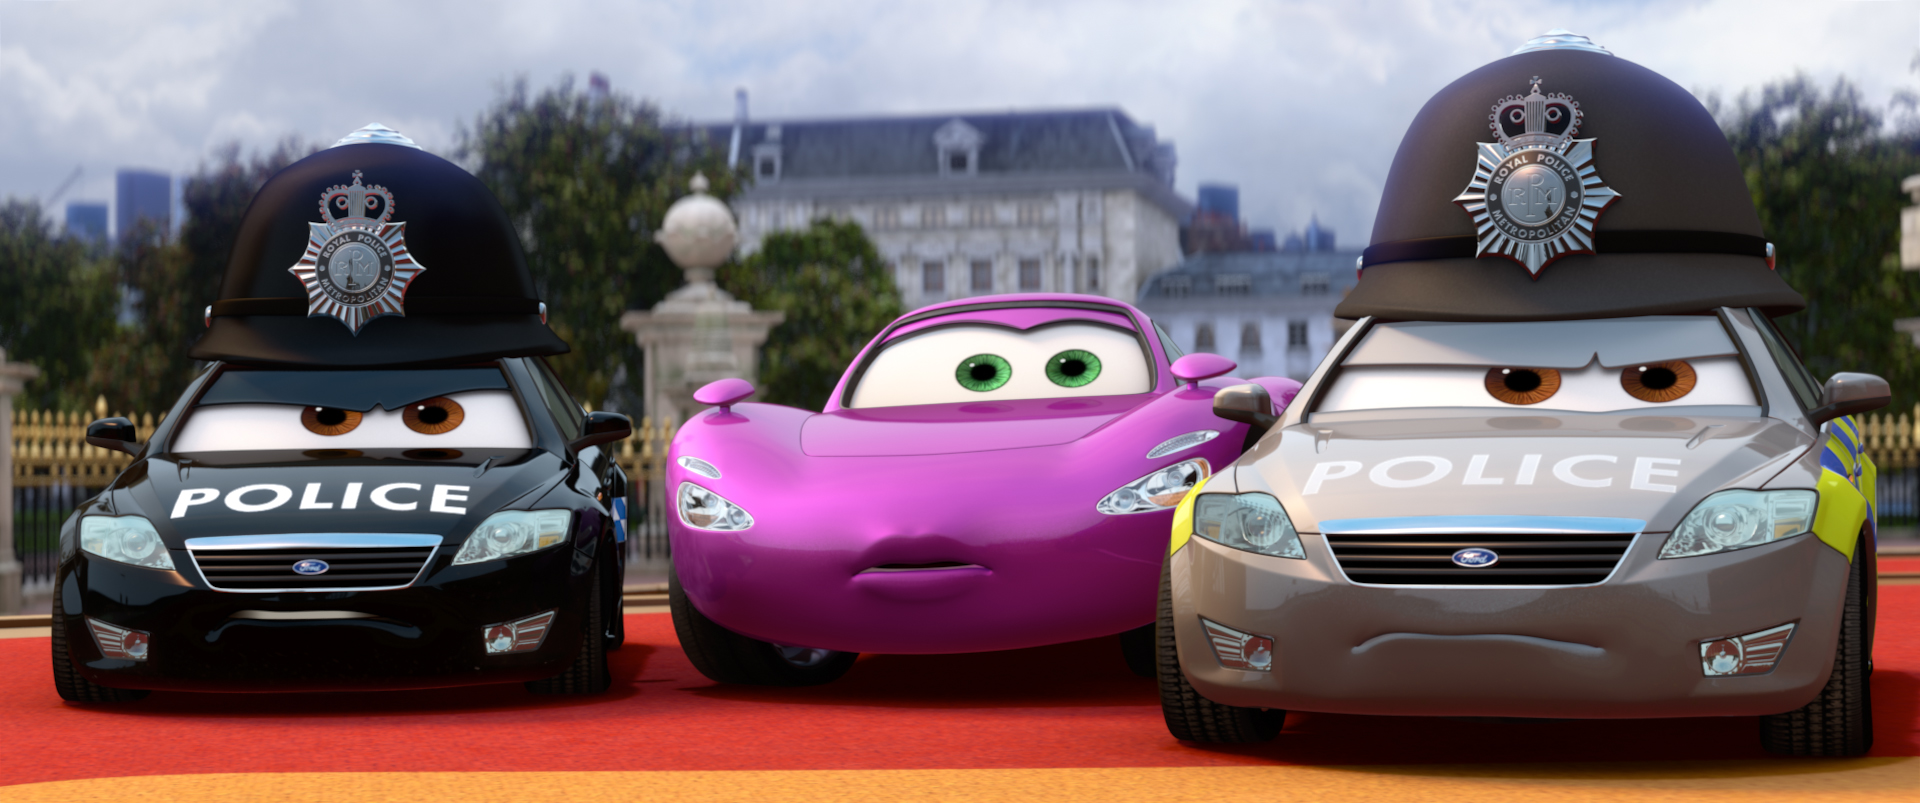 British Police Officers | Pixar Cars Wiki | FANDOM powered by Wikia